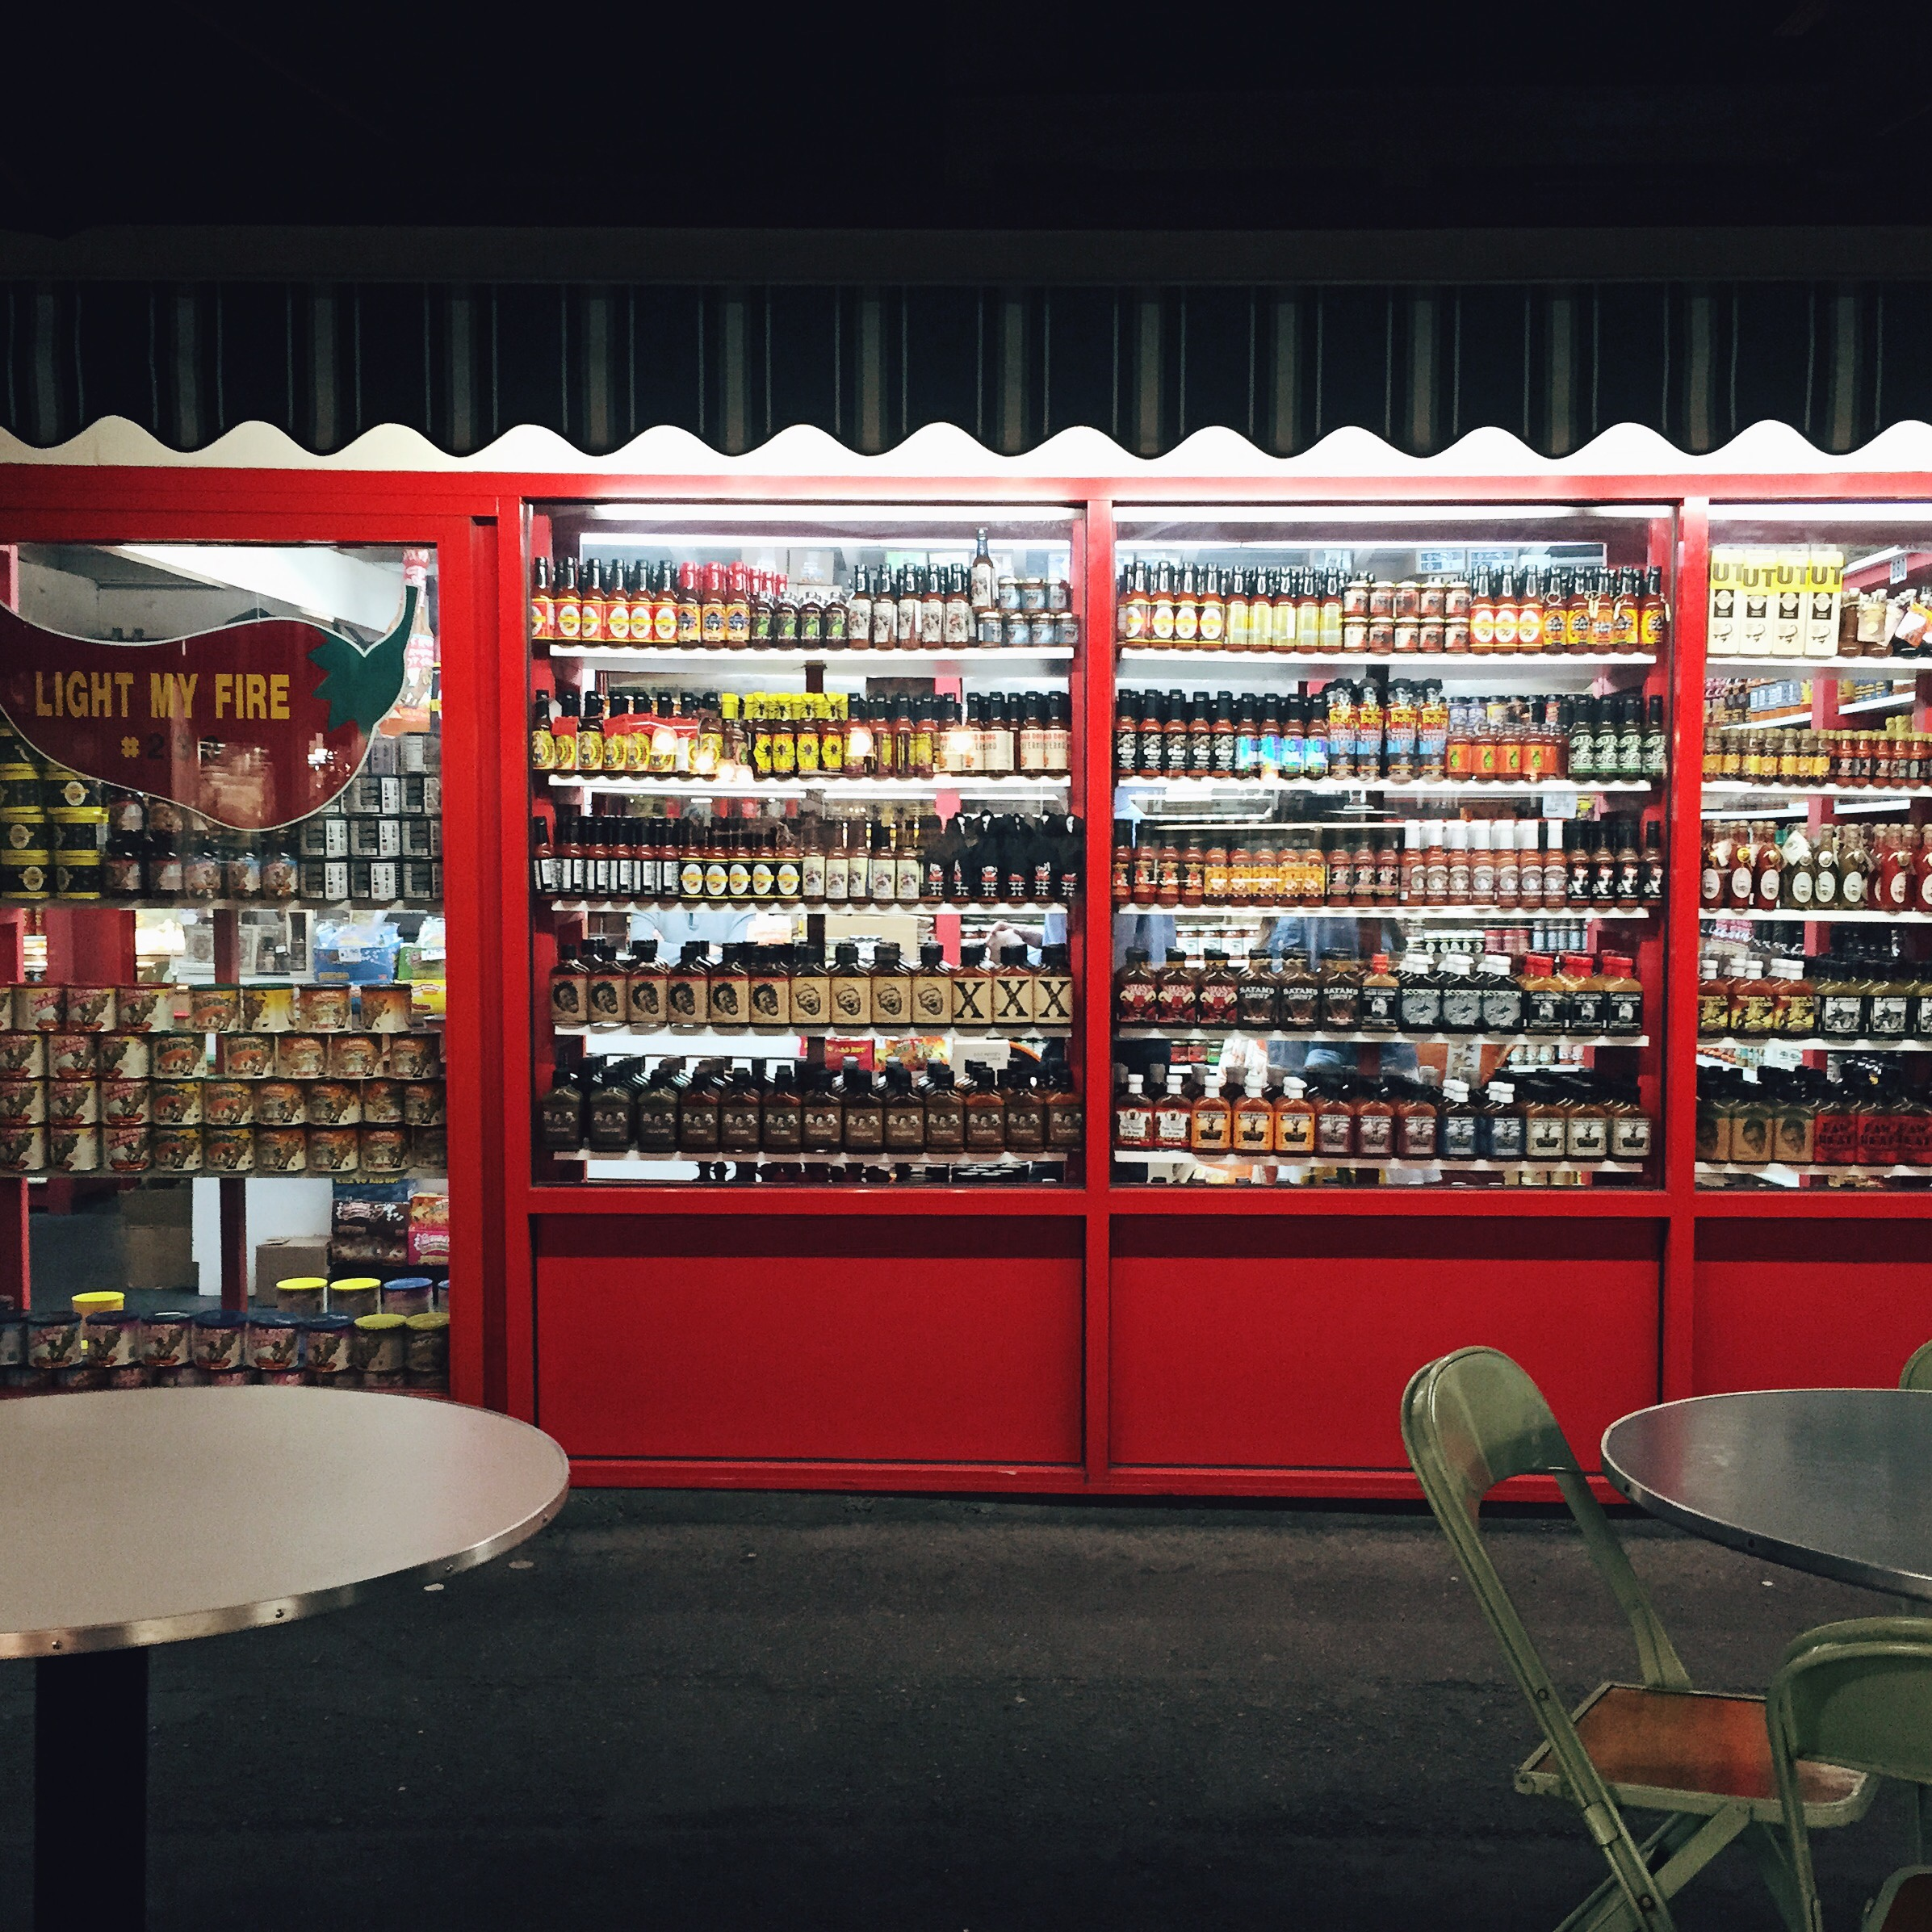 This is a store entirely comprised of Hot Sauce and Condiments... it is amazing.